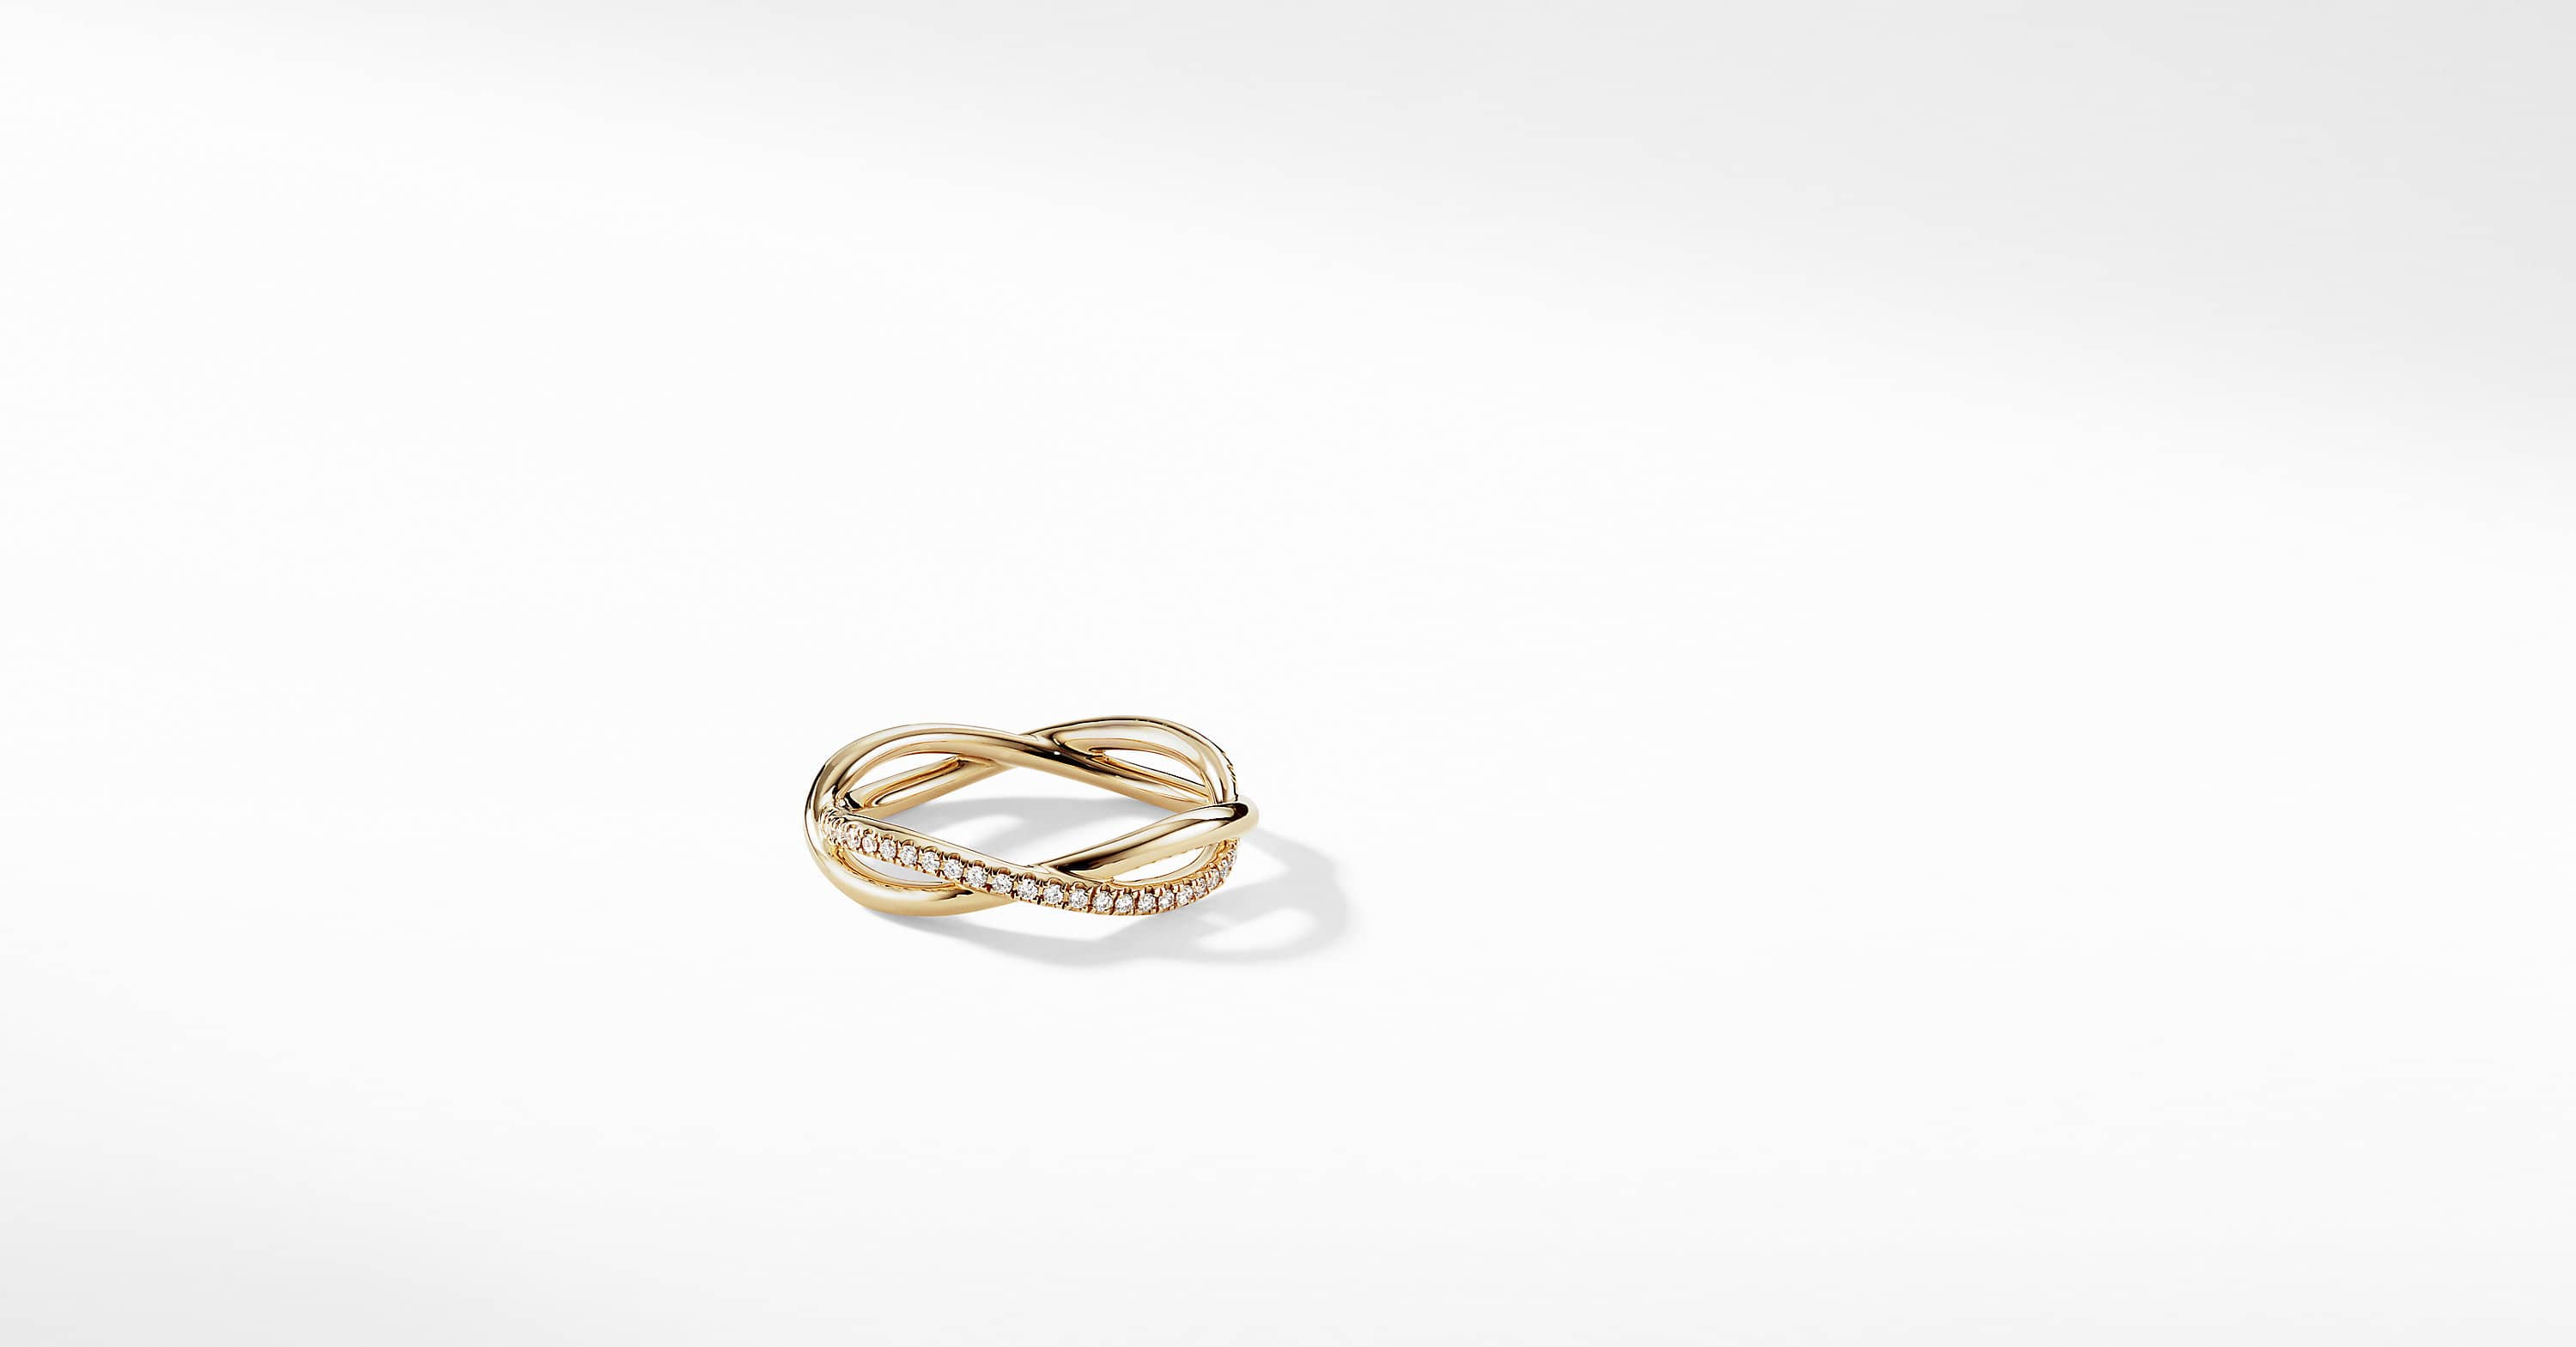 DY Lanai Pavé Wedding Band with Diamonds in 18K Gold